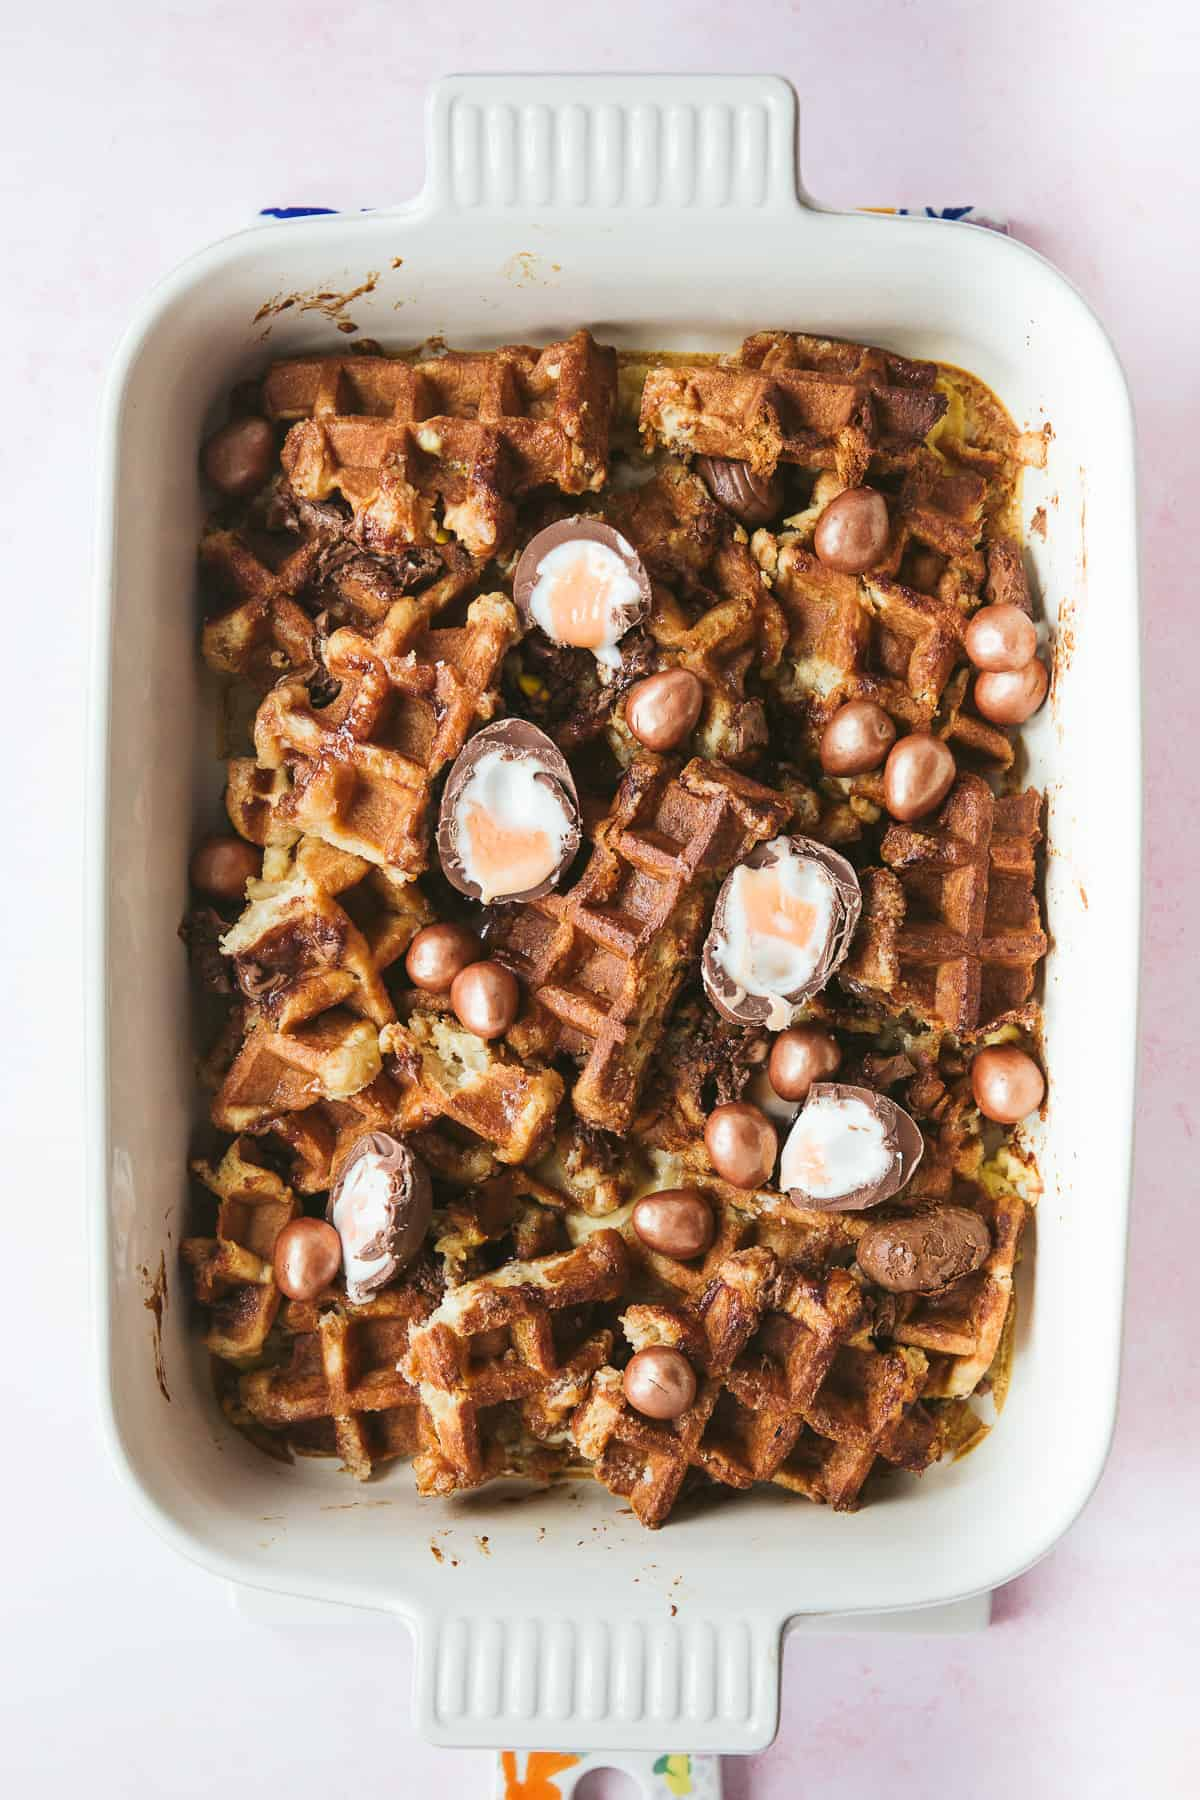 A casserole dish containing a baked Easter Breakfast.